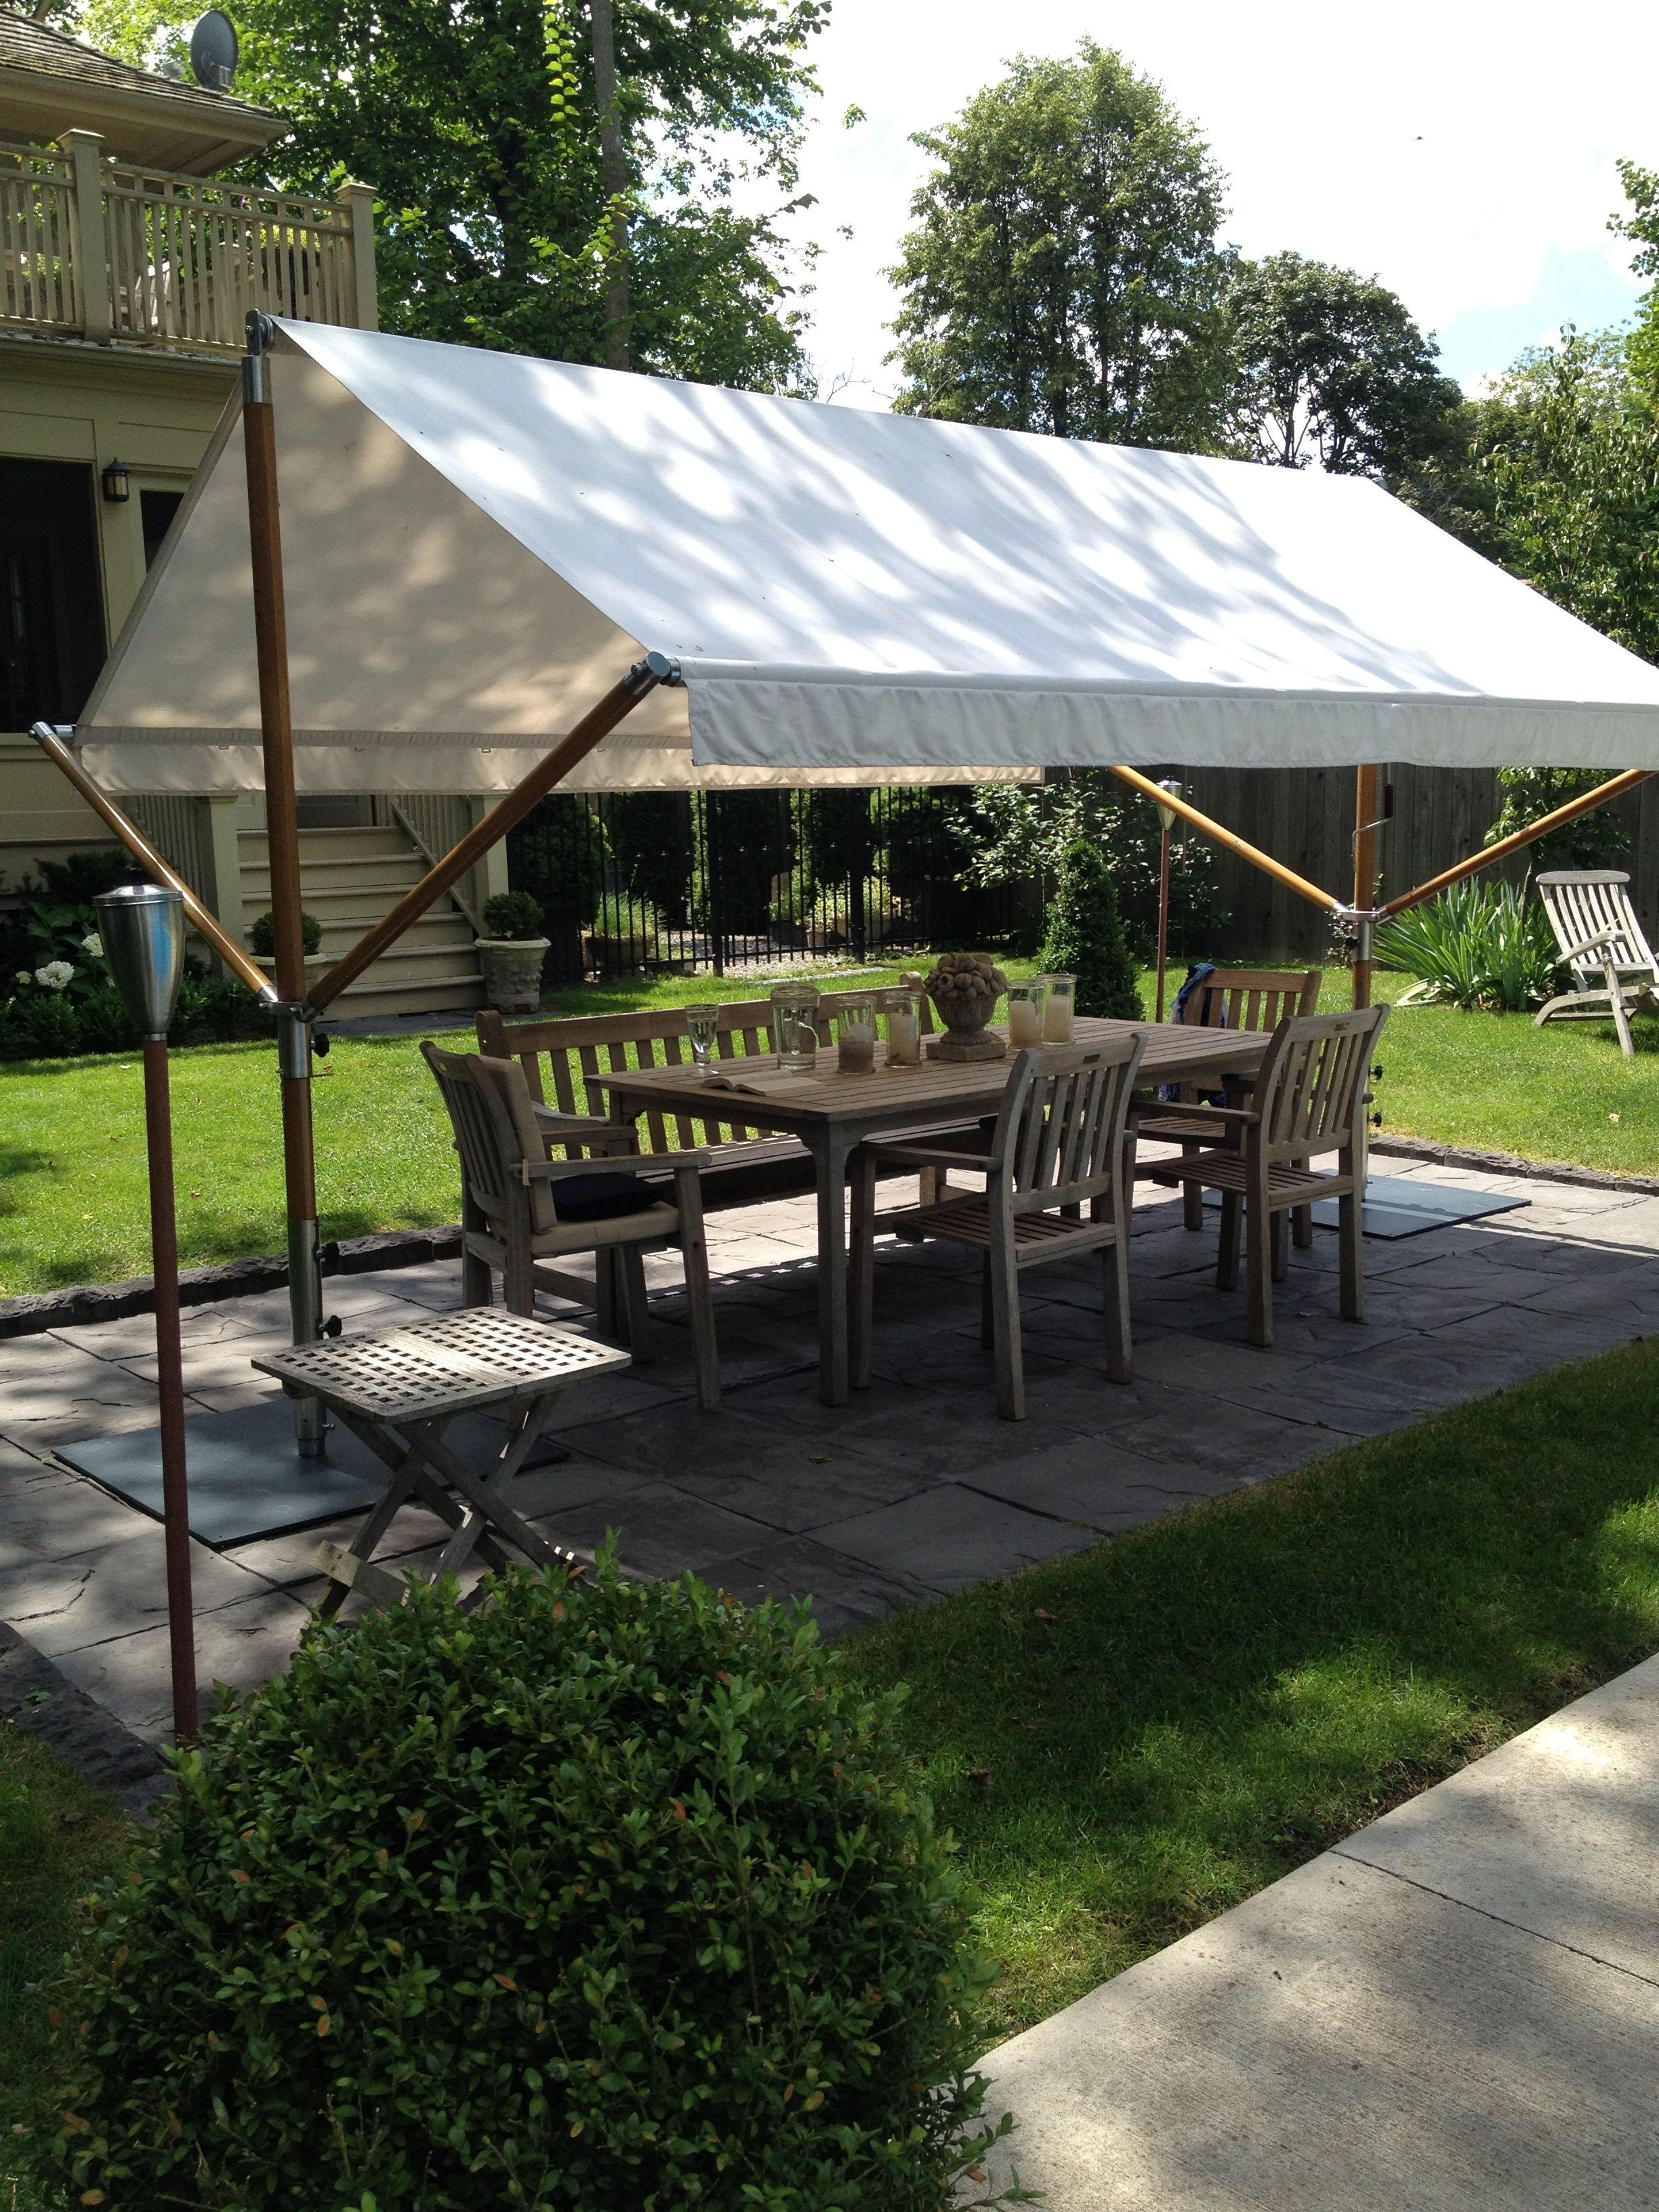 solar by screens sunair awnings standing phoenix pergola freestanding awning pin free